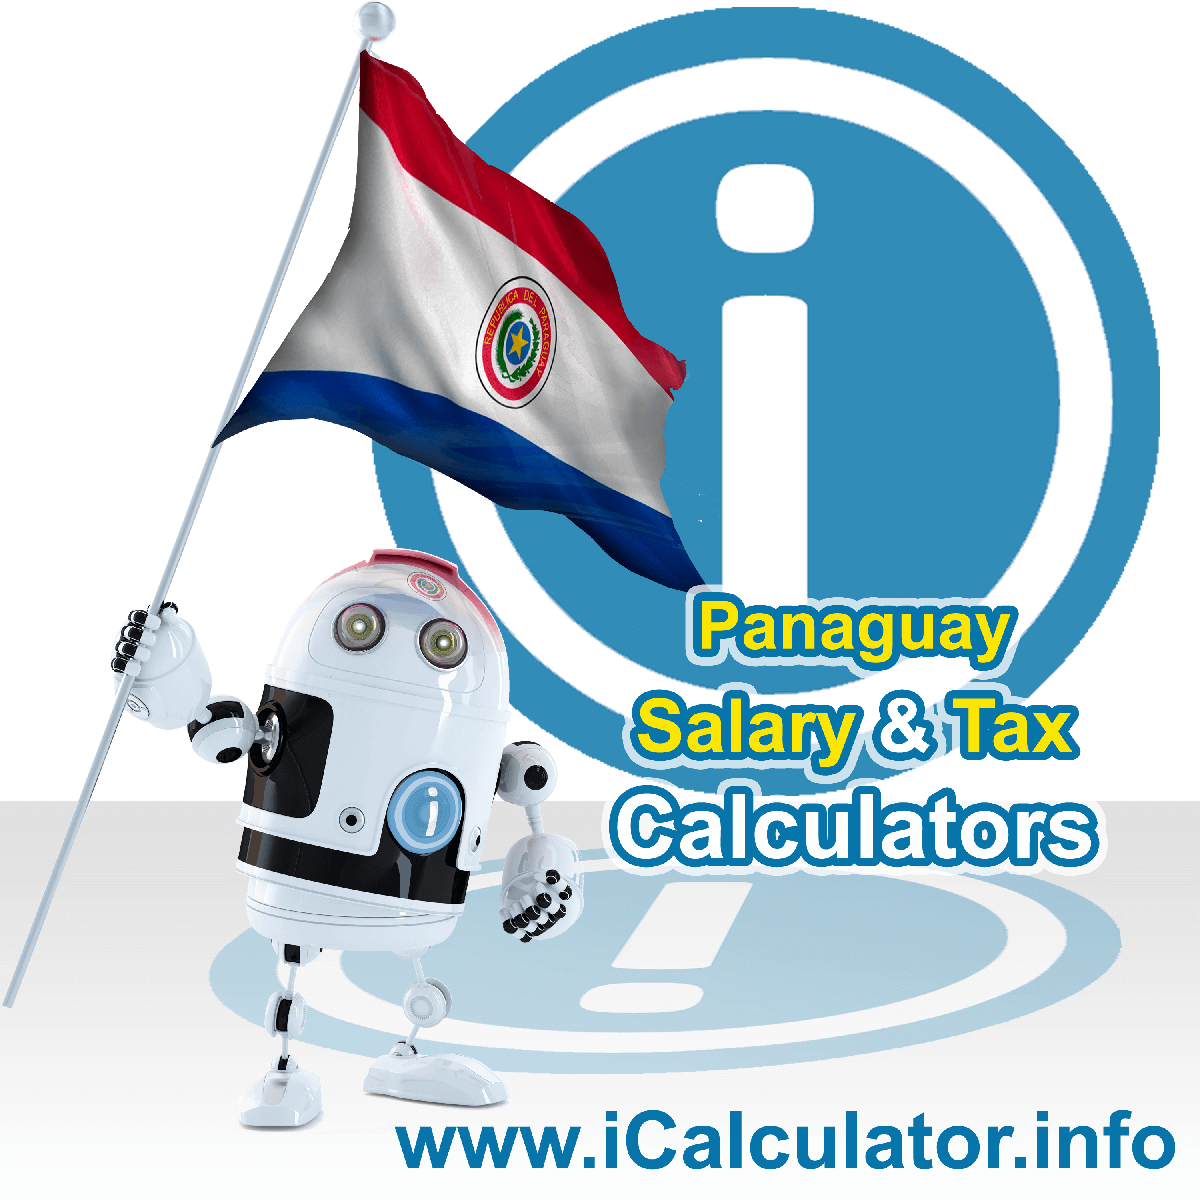 Paraguay Wage Calculator. This image shows the Paraguay flag and information relating to the tax formula for the Paraguay Tax Calculator